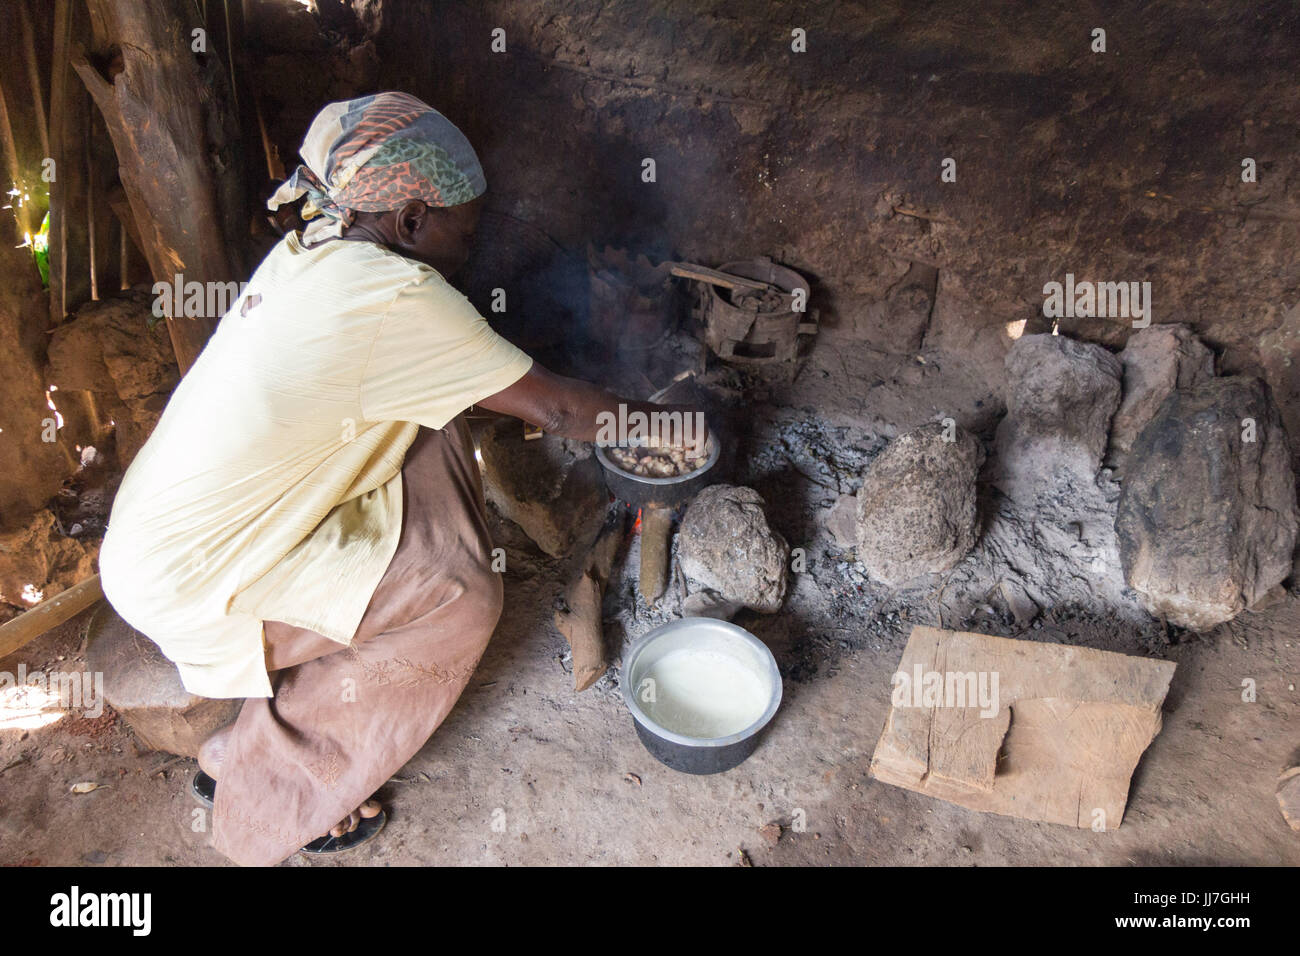 An old black Ugandan woman cooking in metal pots on charcoal fire in a primitive outdoor kitchen in Buikwe, Uganda - Stock Image